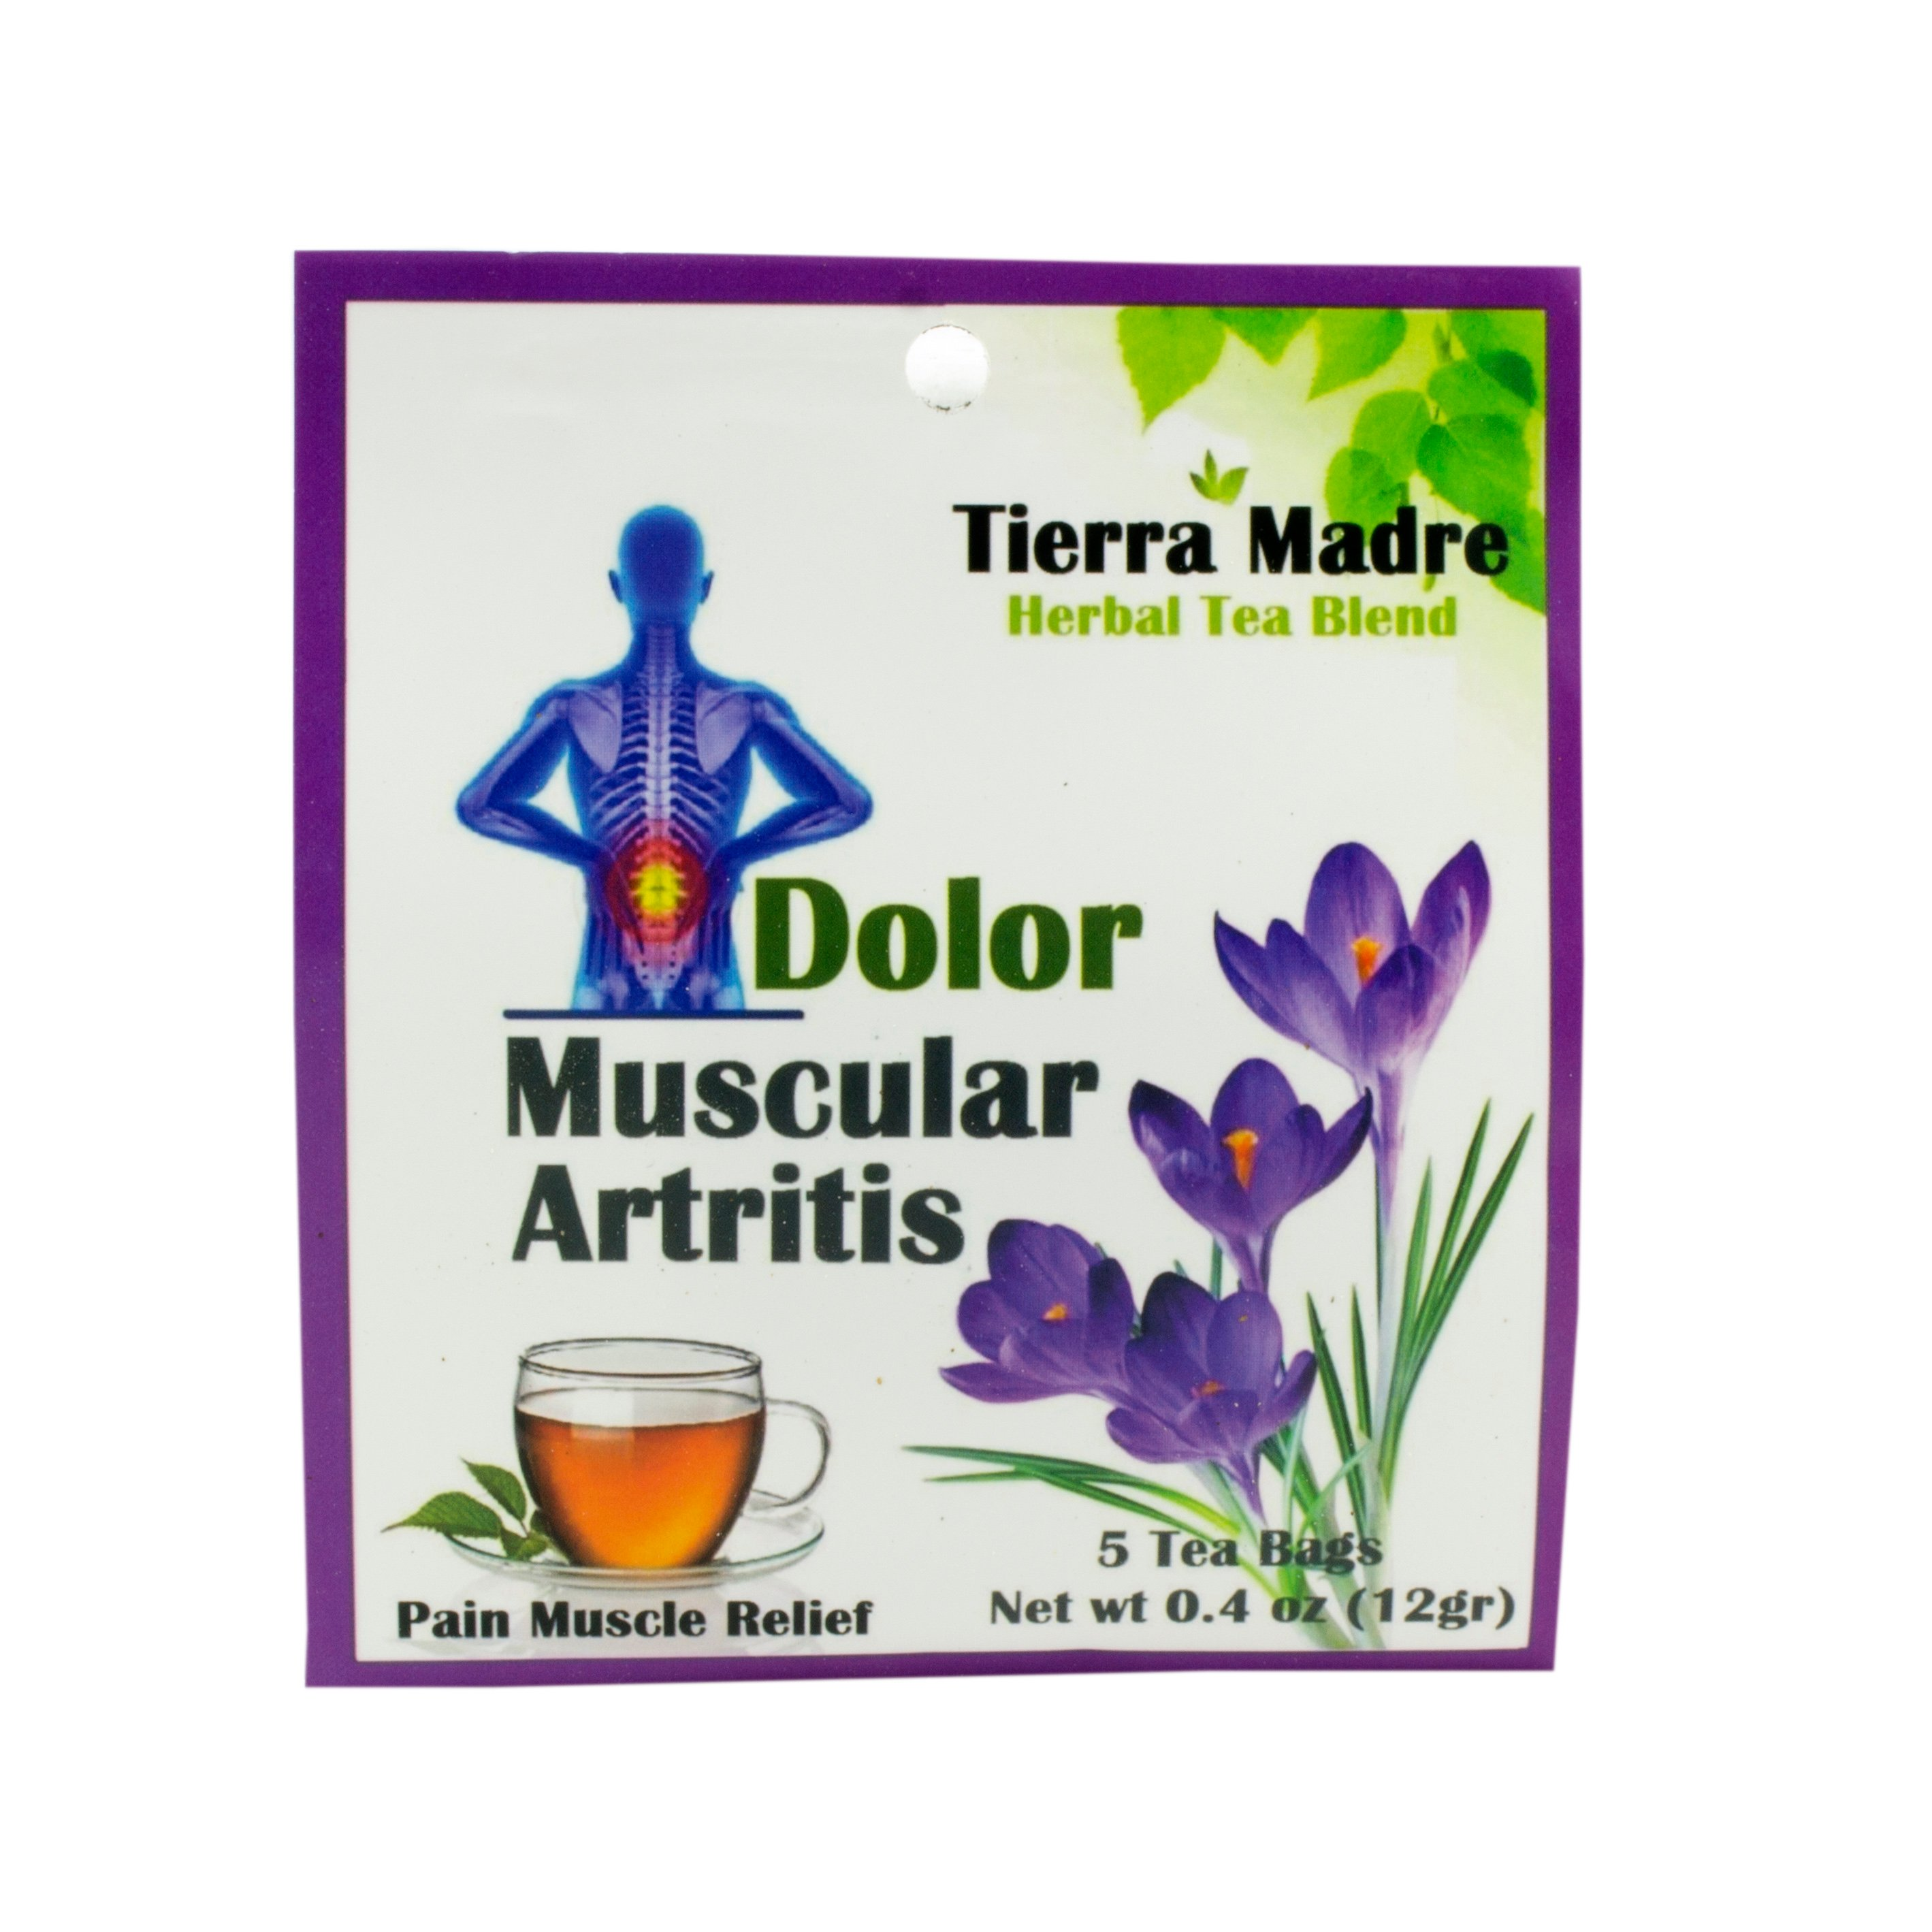 Tierra Madre Slim Tea Reviews - Tierra madre dolor muscular artritis herbal tea blend shop tea at heb